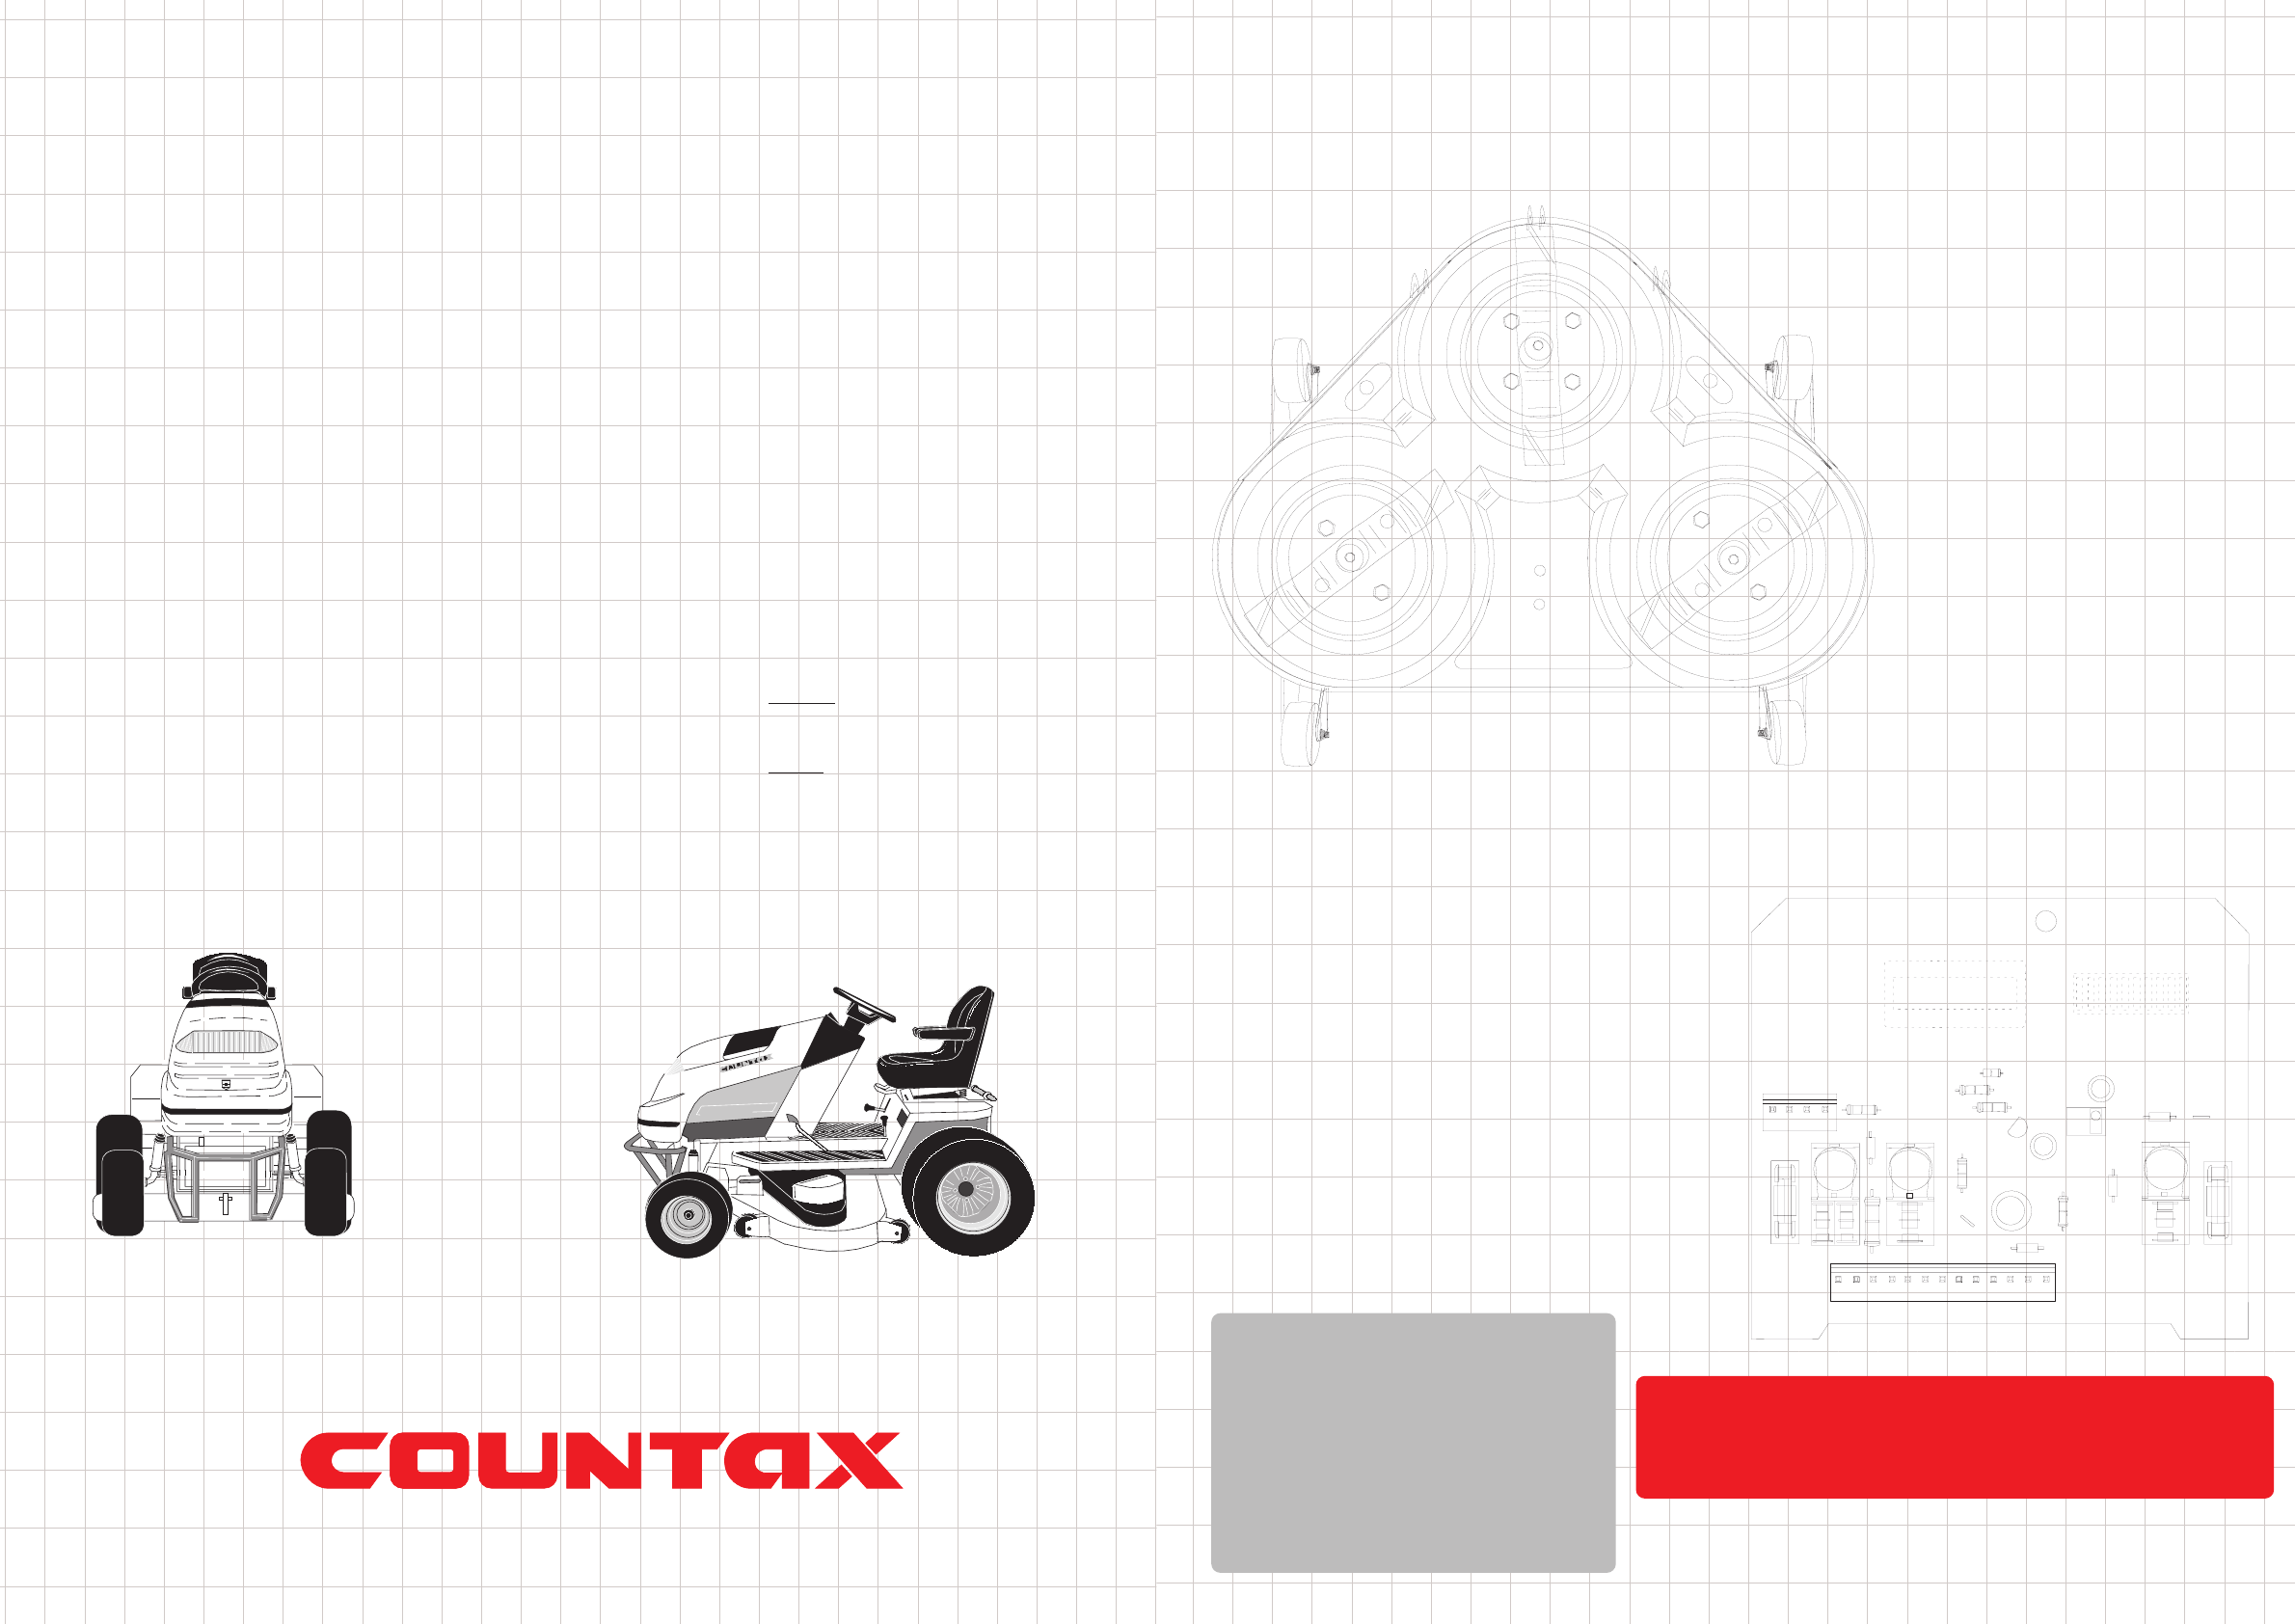 bf35bdf3 0368 444e a39f 867eac288006 bg1 countax lawn mower a20 user guide manualsonline com countax wiring diagram at pacquiaovsvargaslive.co